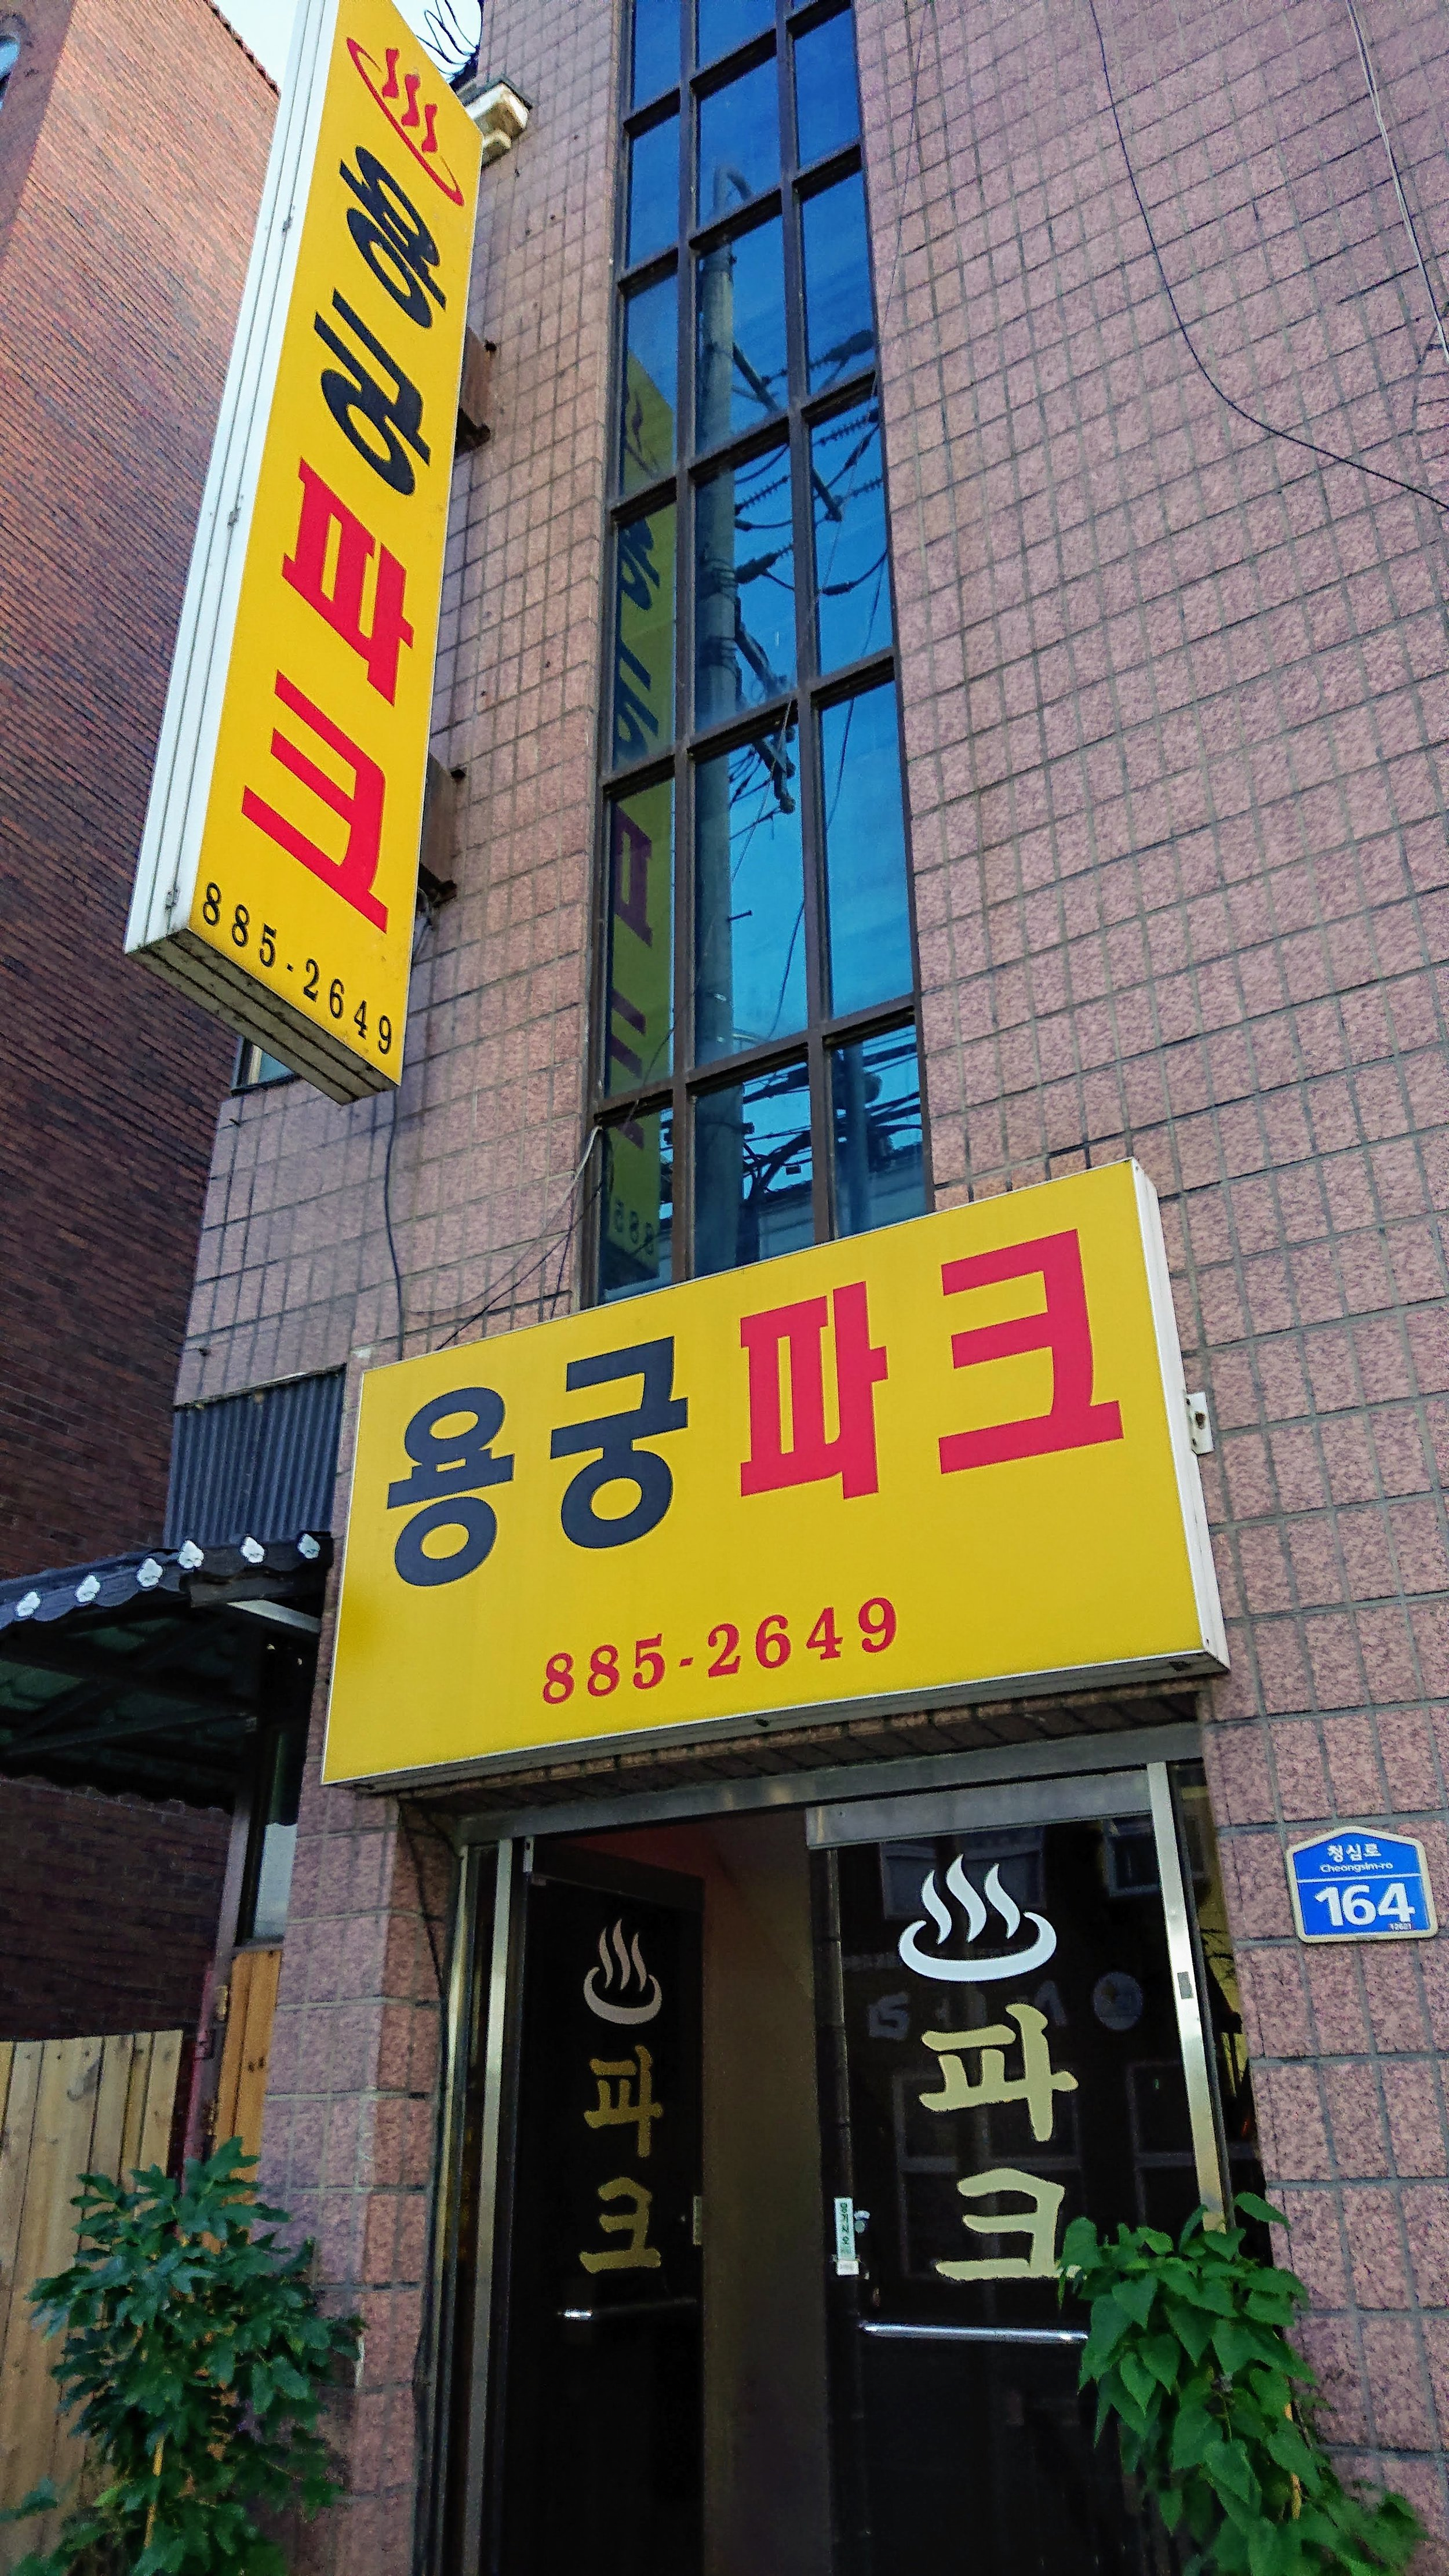 Yunggung Park, 164 Cheongsim-ro, near the corner of Saejong-ro. As cheap as they come. Note that this is by no means the only option. There are many motels in Yeoju - we were just exhausted and opted for the first place we found that wasn't shut.